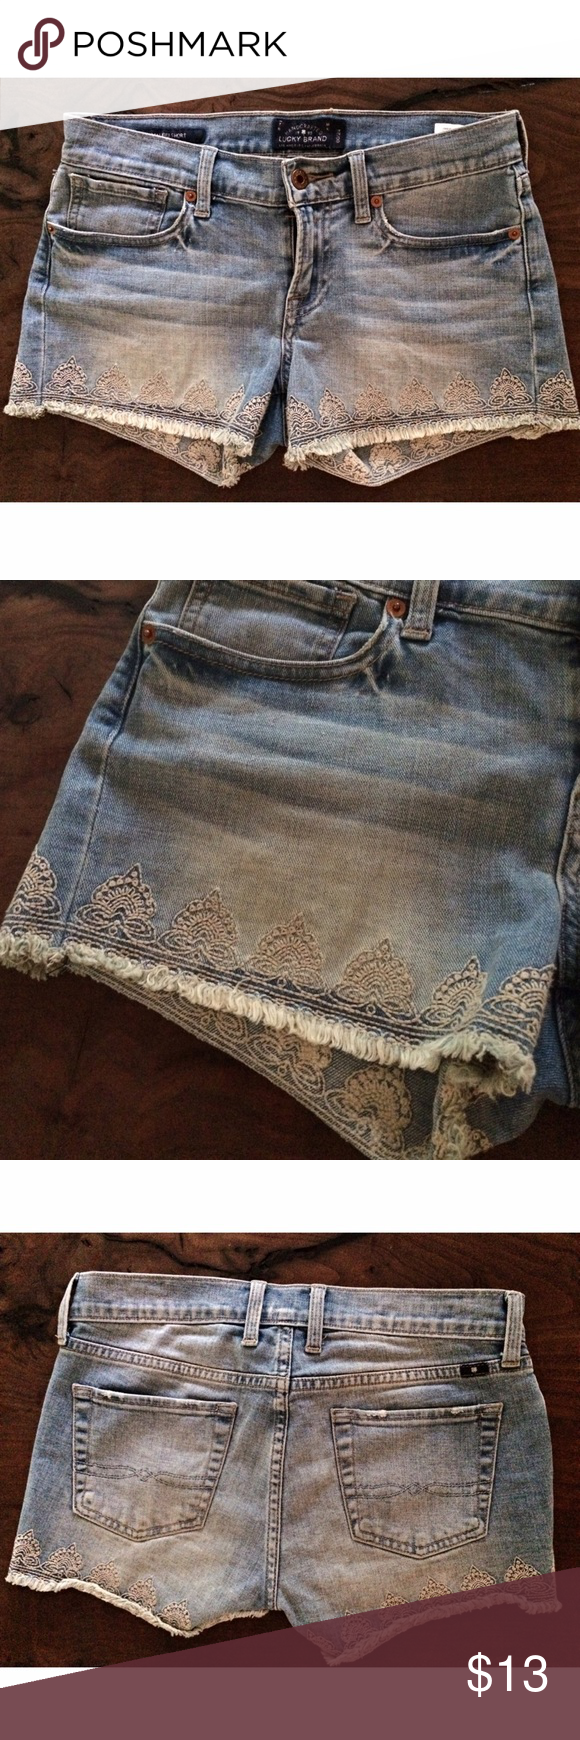 "Lucky Brand Malibu Embroidered Cut Off Short In excellent condition cut off short from Lucky Brand Jean in size 24, 00. No flaws. Measure about 13"" length, 15"" waist laying flat, 8"" rise. ❌No trades or modeling. Always open to reasonable offers though. Thank you‼️ Lucky Brand Shorts Jean Shorts"